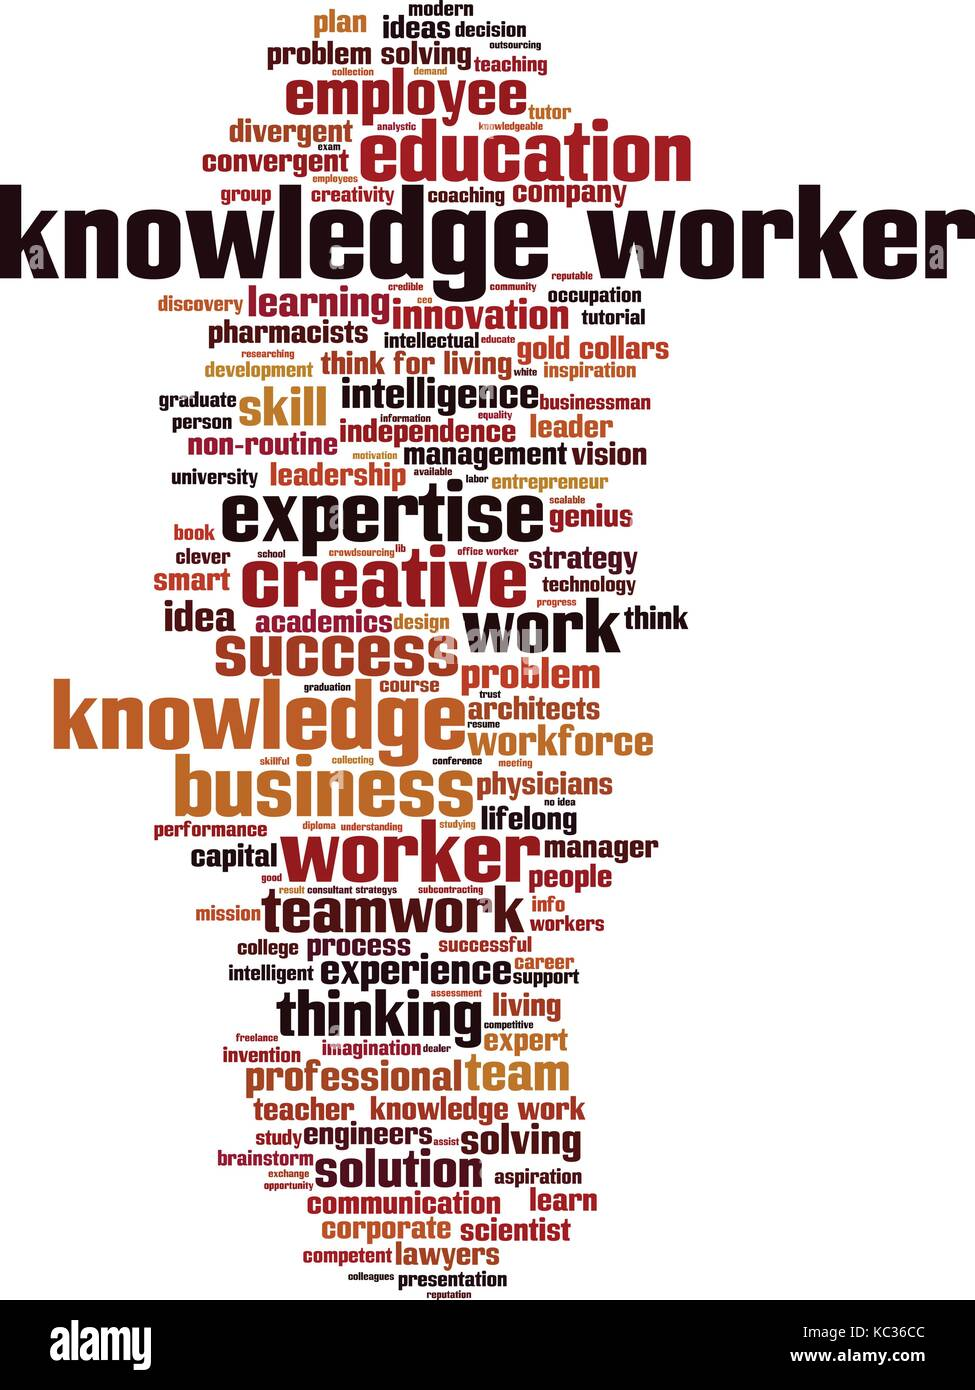 how many knowledge workers in the world